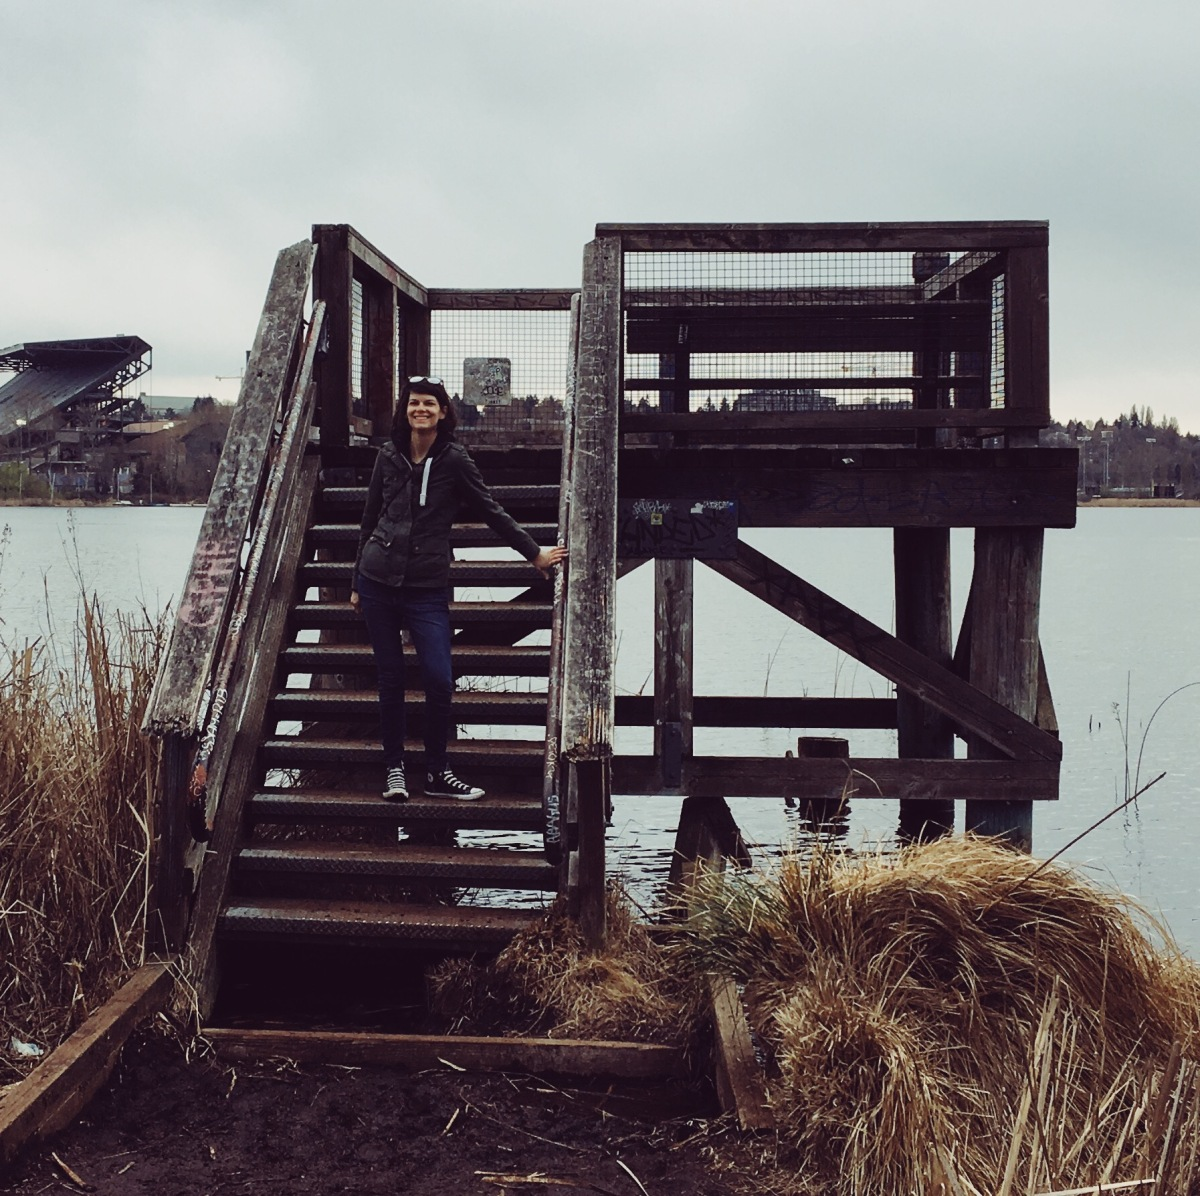 Holly standing on the steps of the raised observation platform overlooking Lake Washington on the Arboretum Waterfront Trail near the Washington Park Arboretum in Seattle, WA